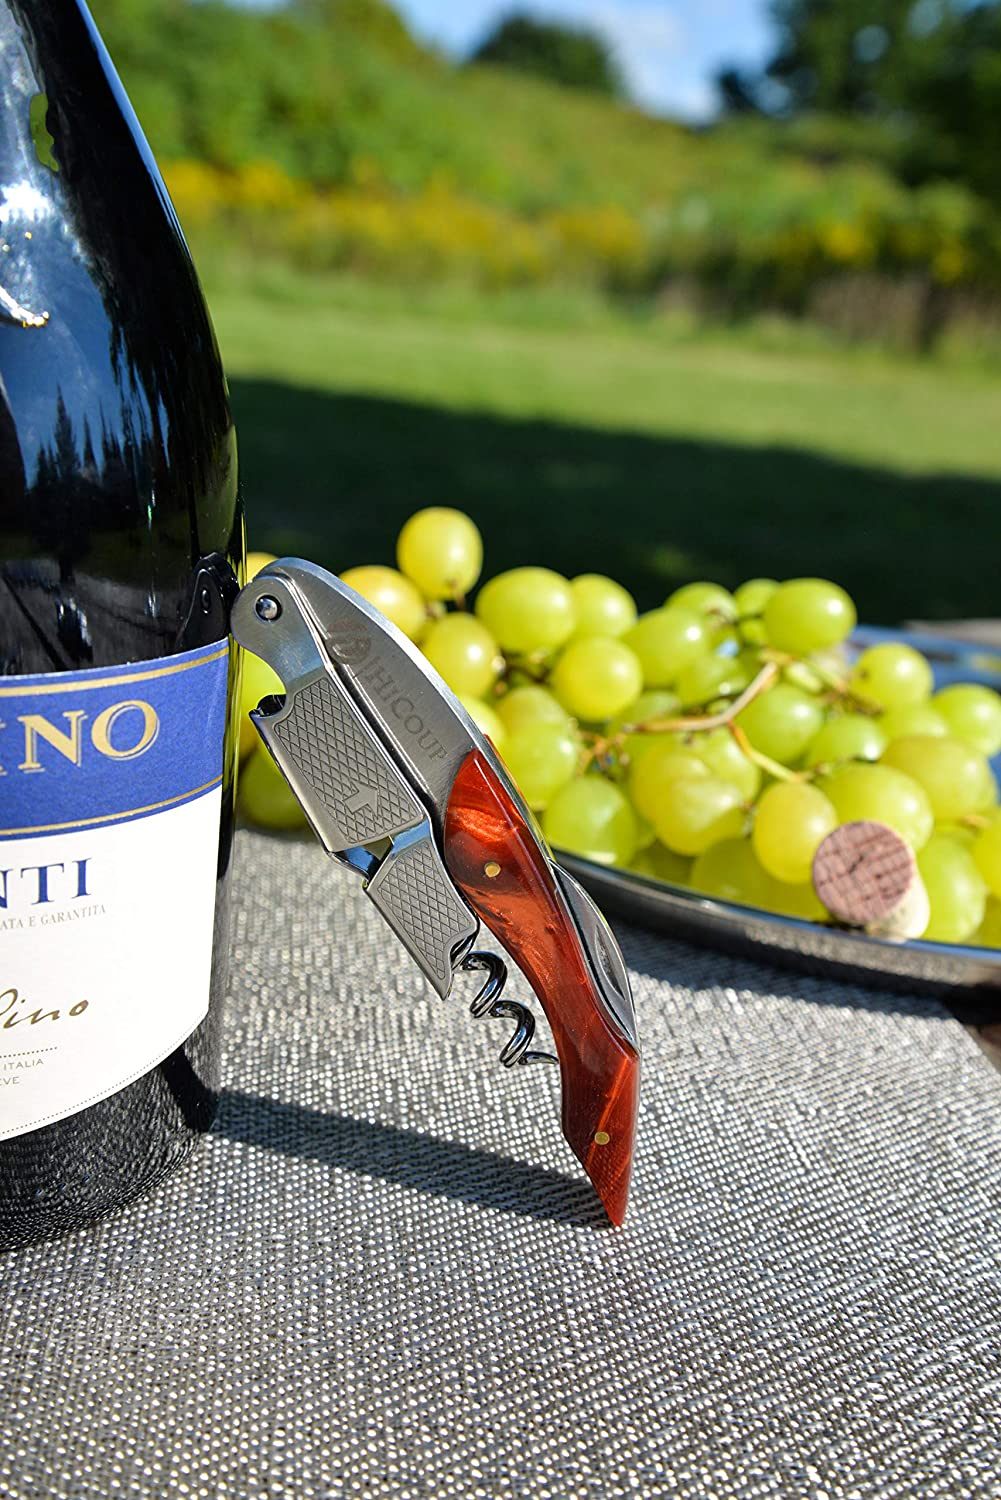 Professional Waiter/'s Corkscrew by HiCoup Waiters and Bartenders Around The World HiCoup Kitchenware HK-01-Tiger/'s Eye Tiger/'s Eye Resin Handle All-in-one Corkscrew Bottle Opener and Foil Cutter The Favored Choice of Sommeliers